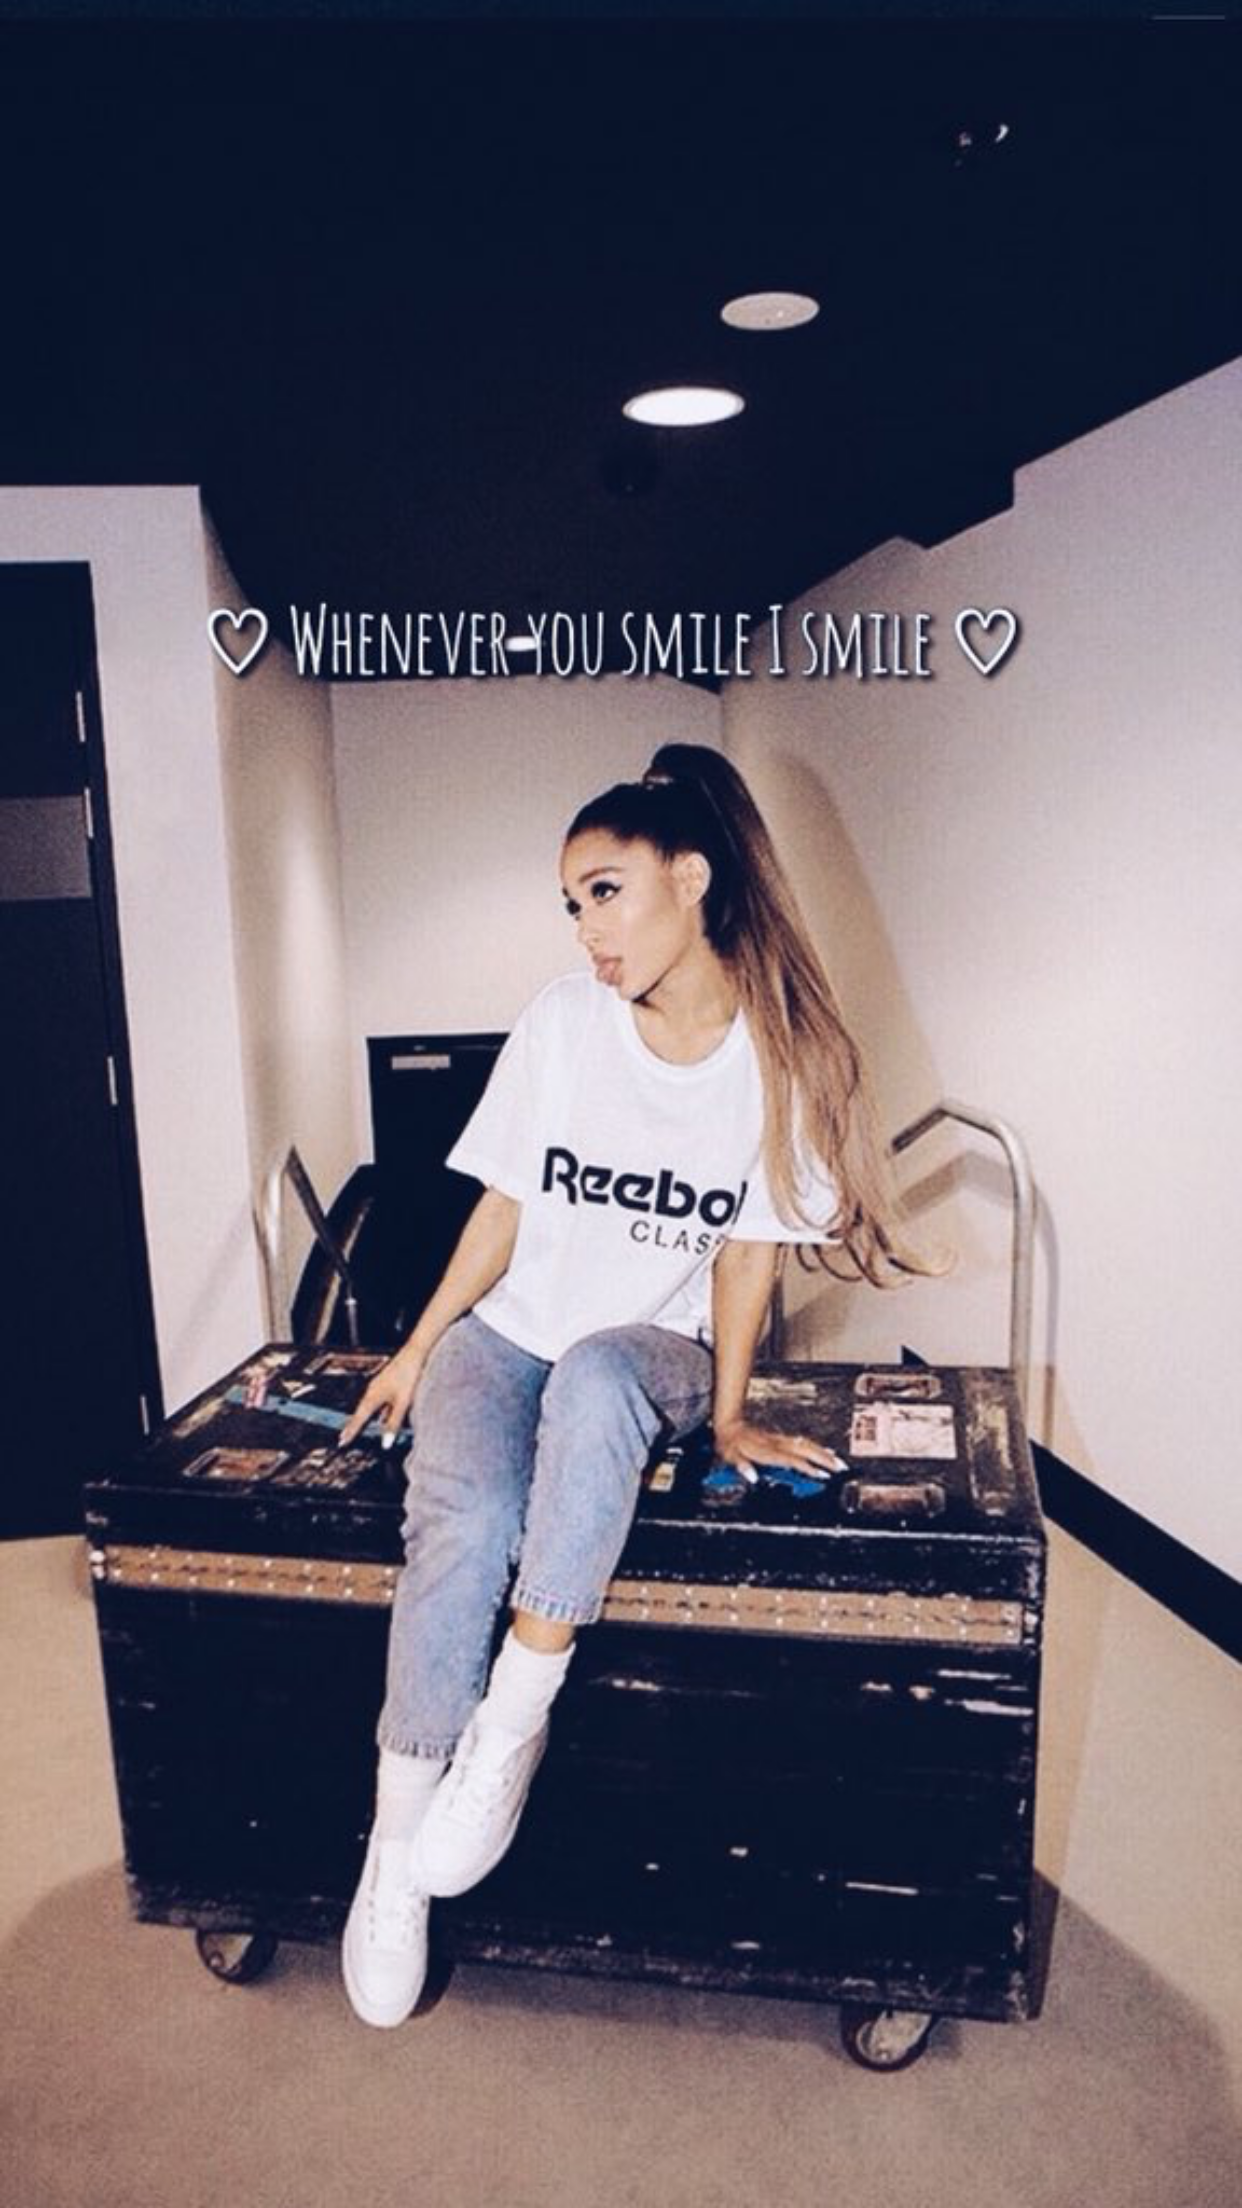 Pin by dean pool on ariana grande pinterest ariana grande pin by dean pool on ariana grande pinterest ariana grande queens and adriana grande voltagebd Image collections